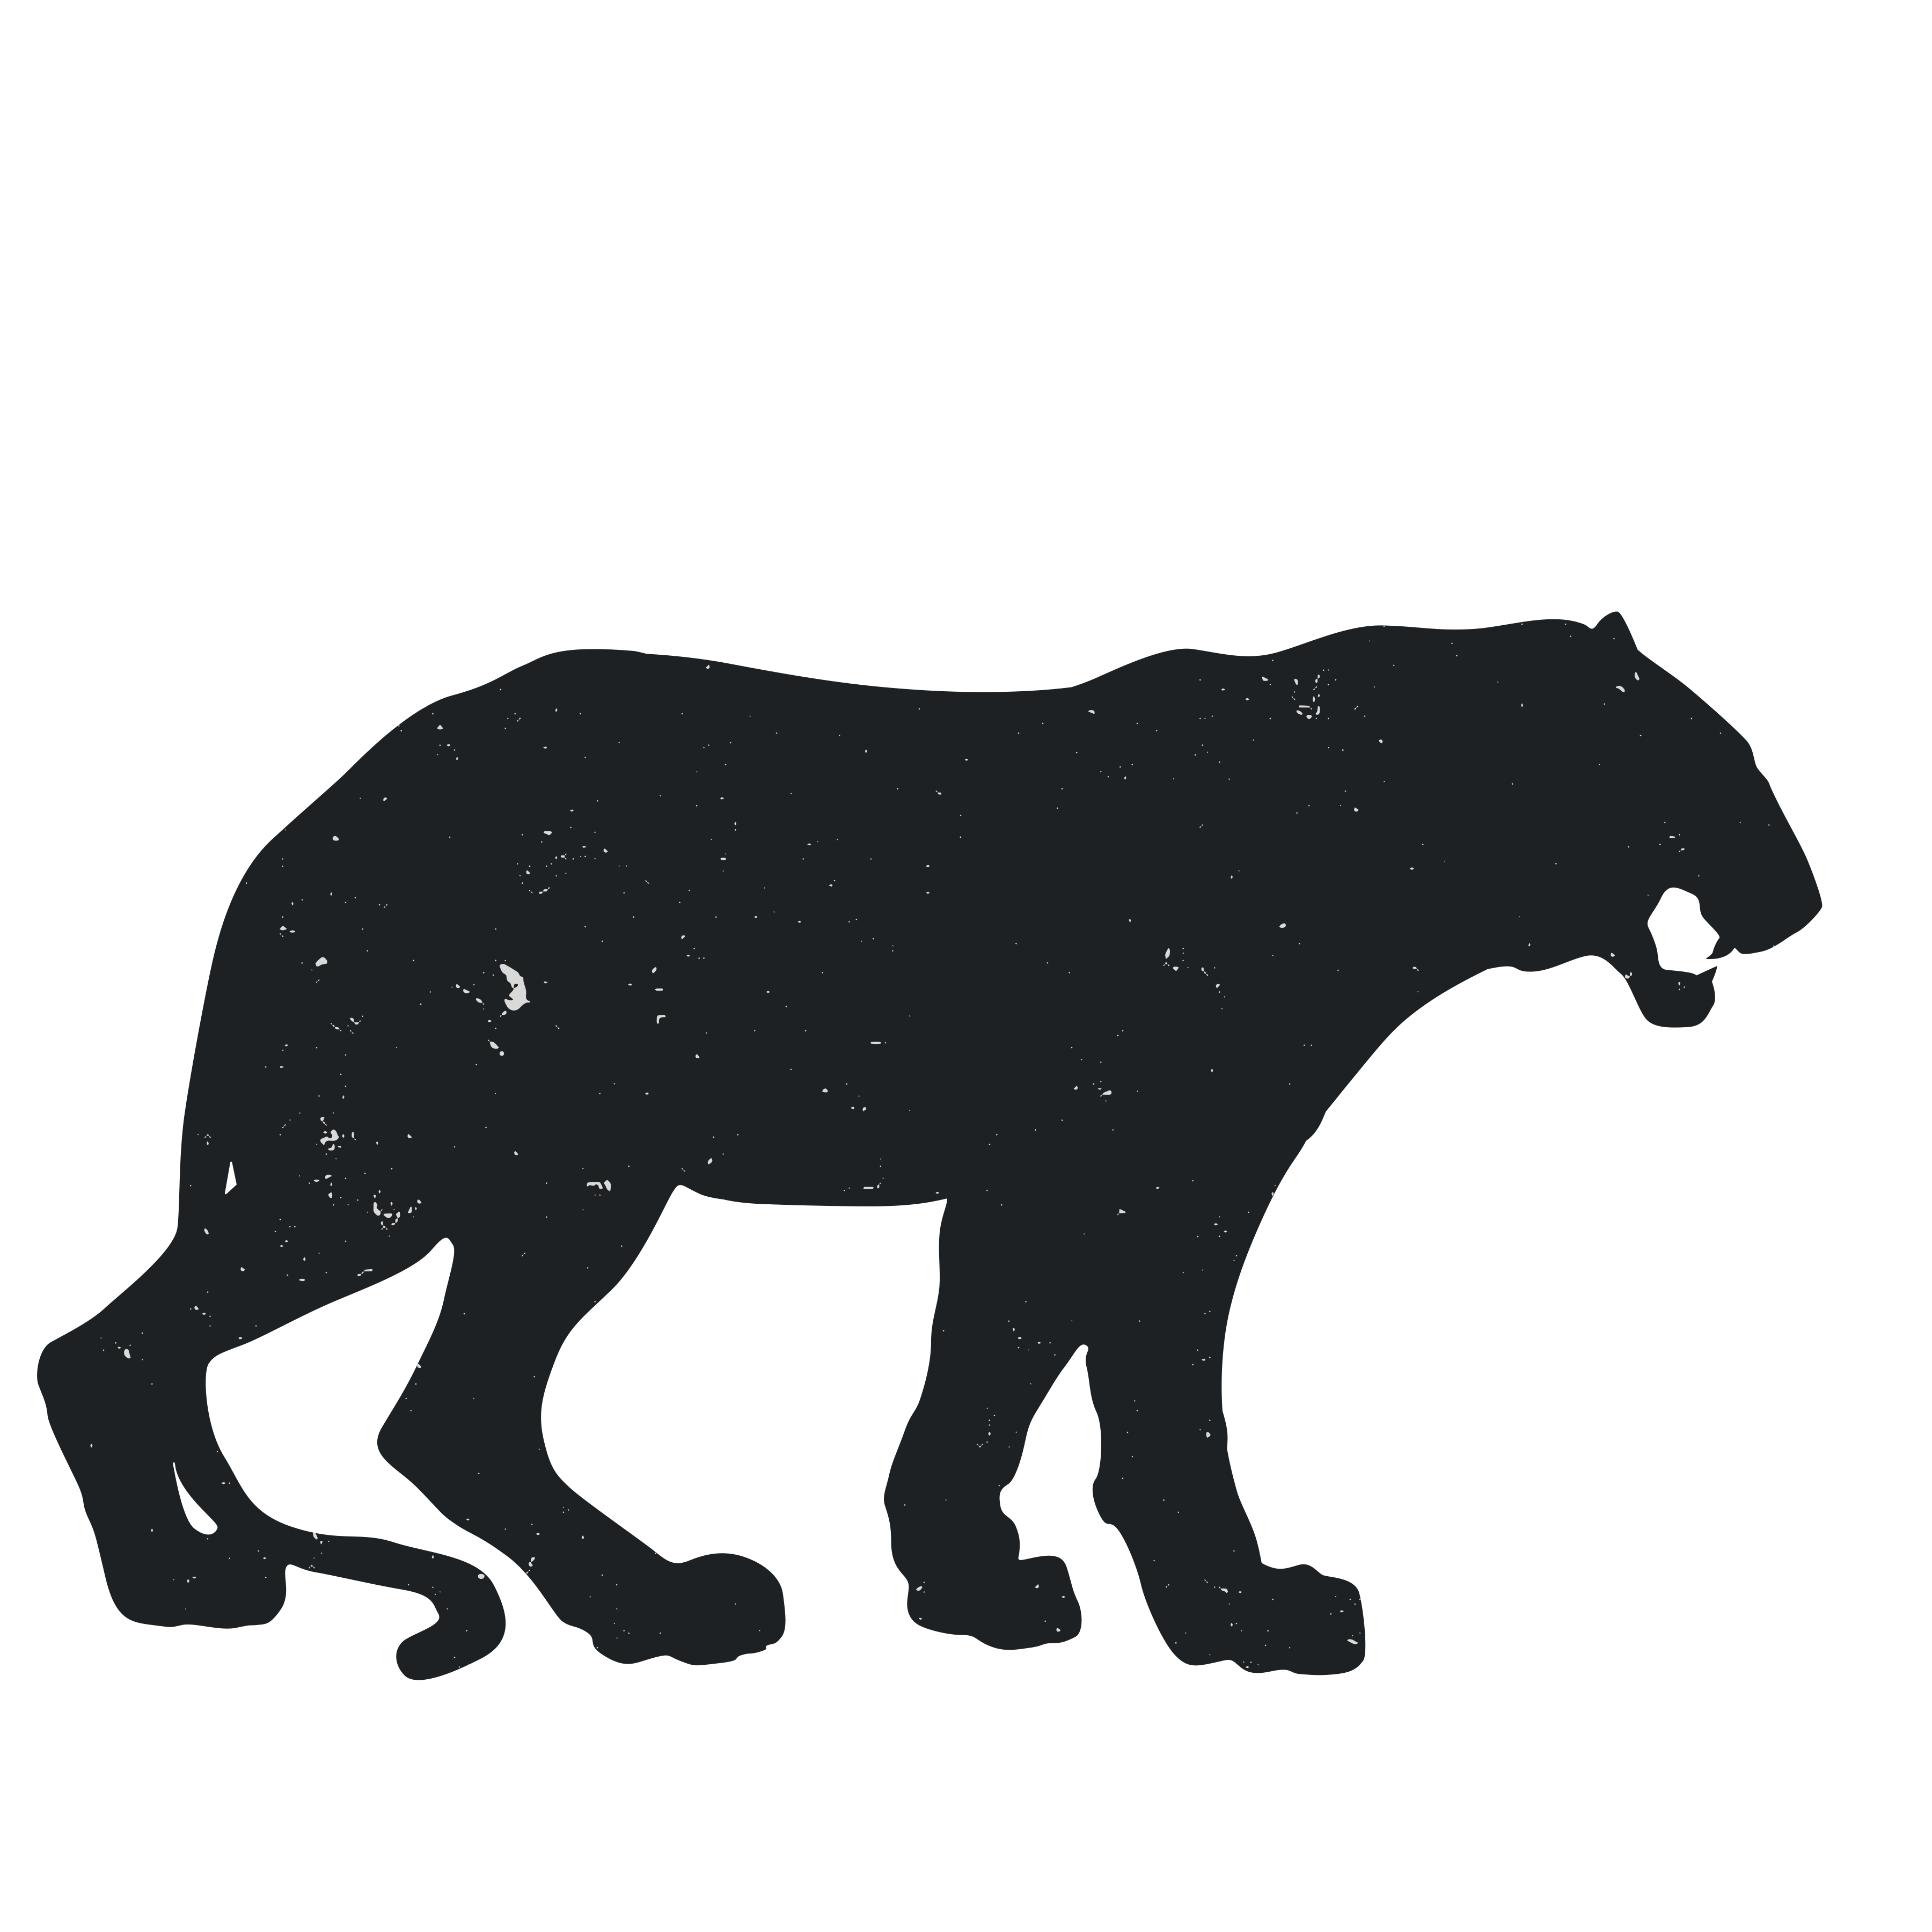 Panther walking png. Baby drawing at getdrawings